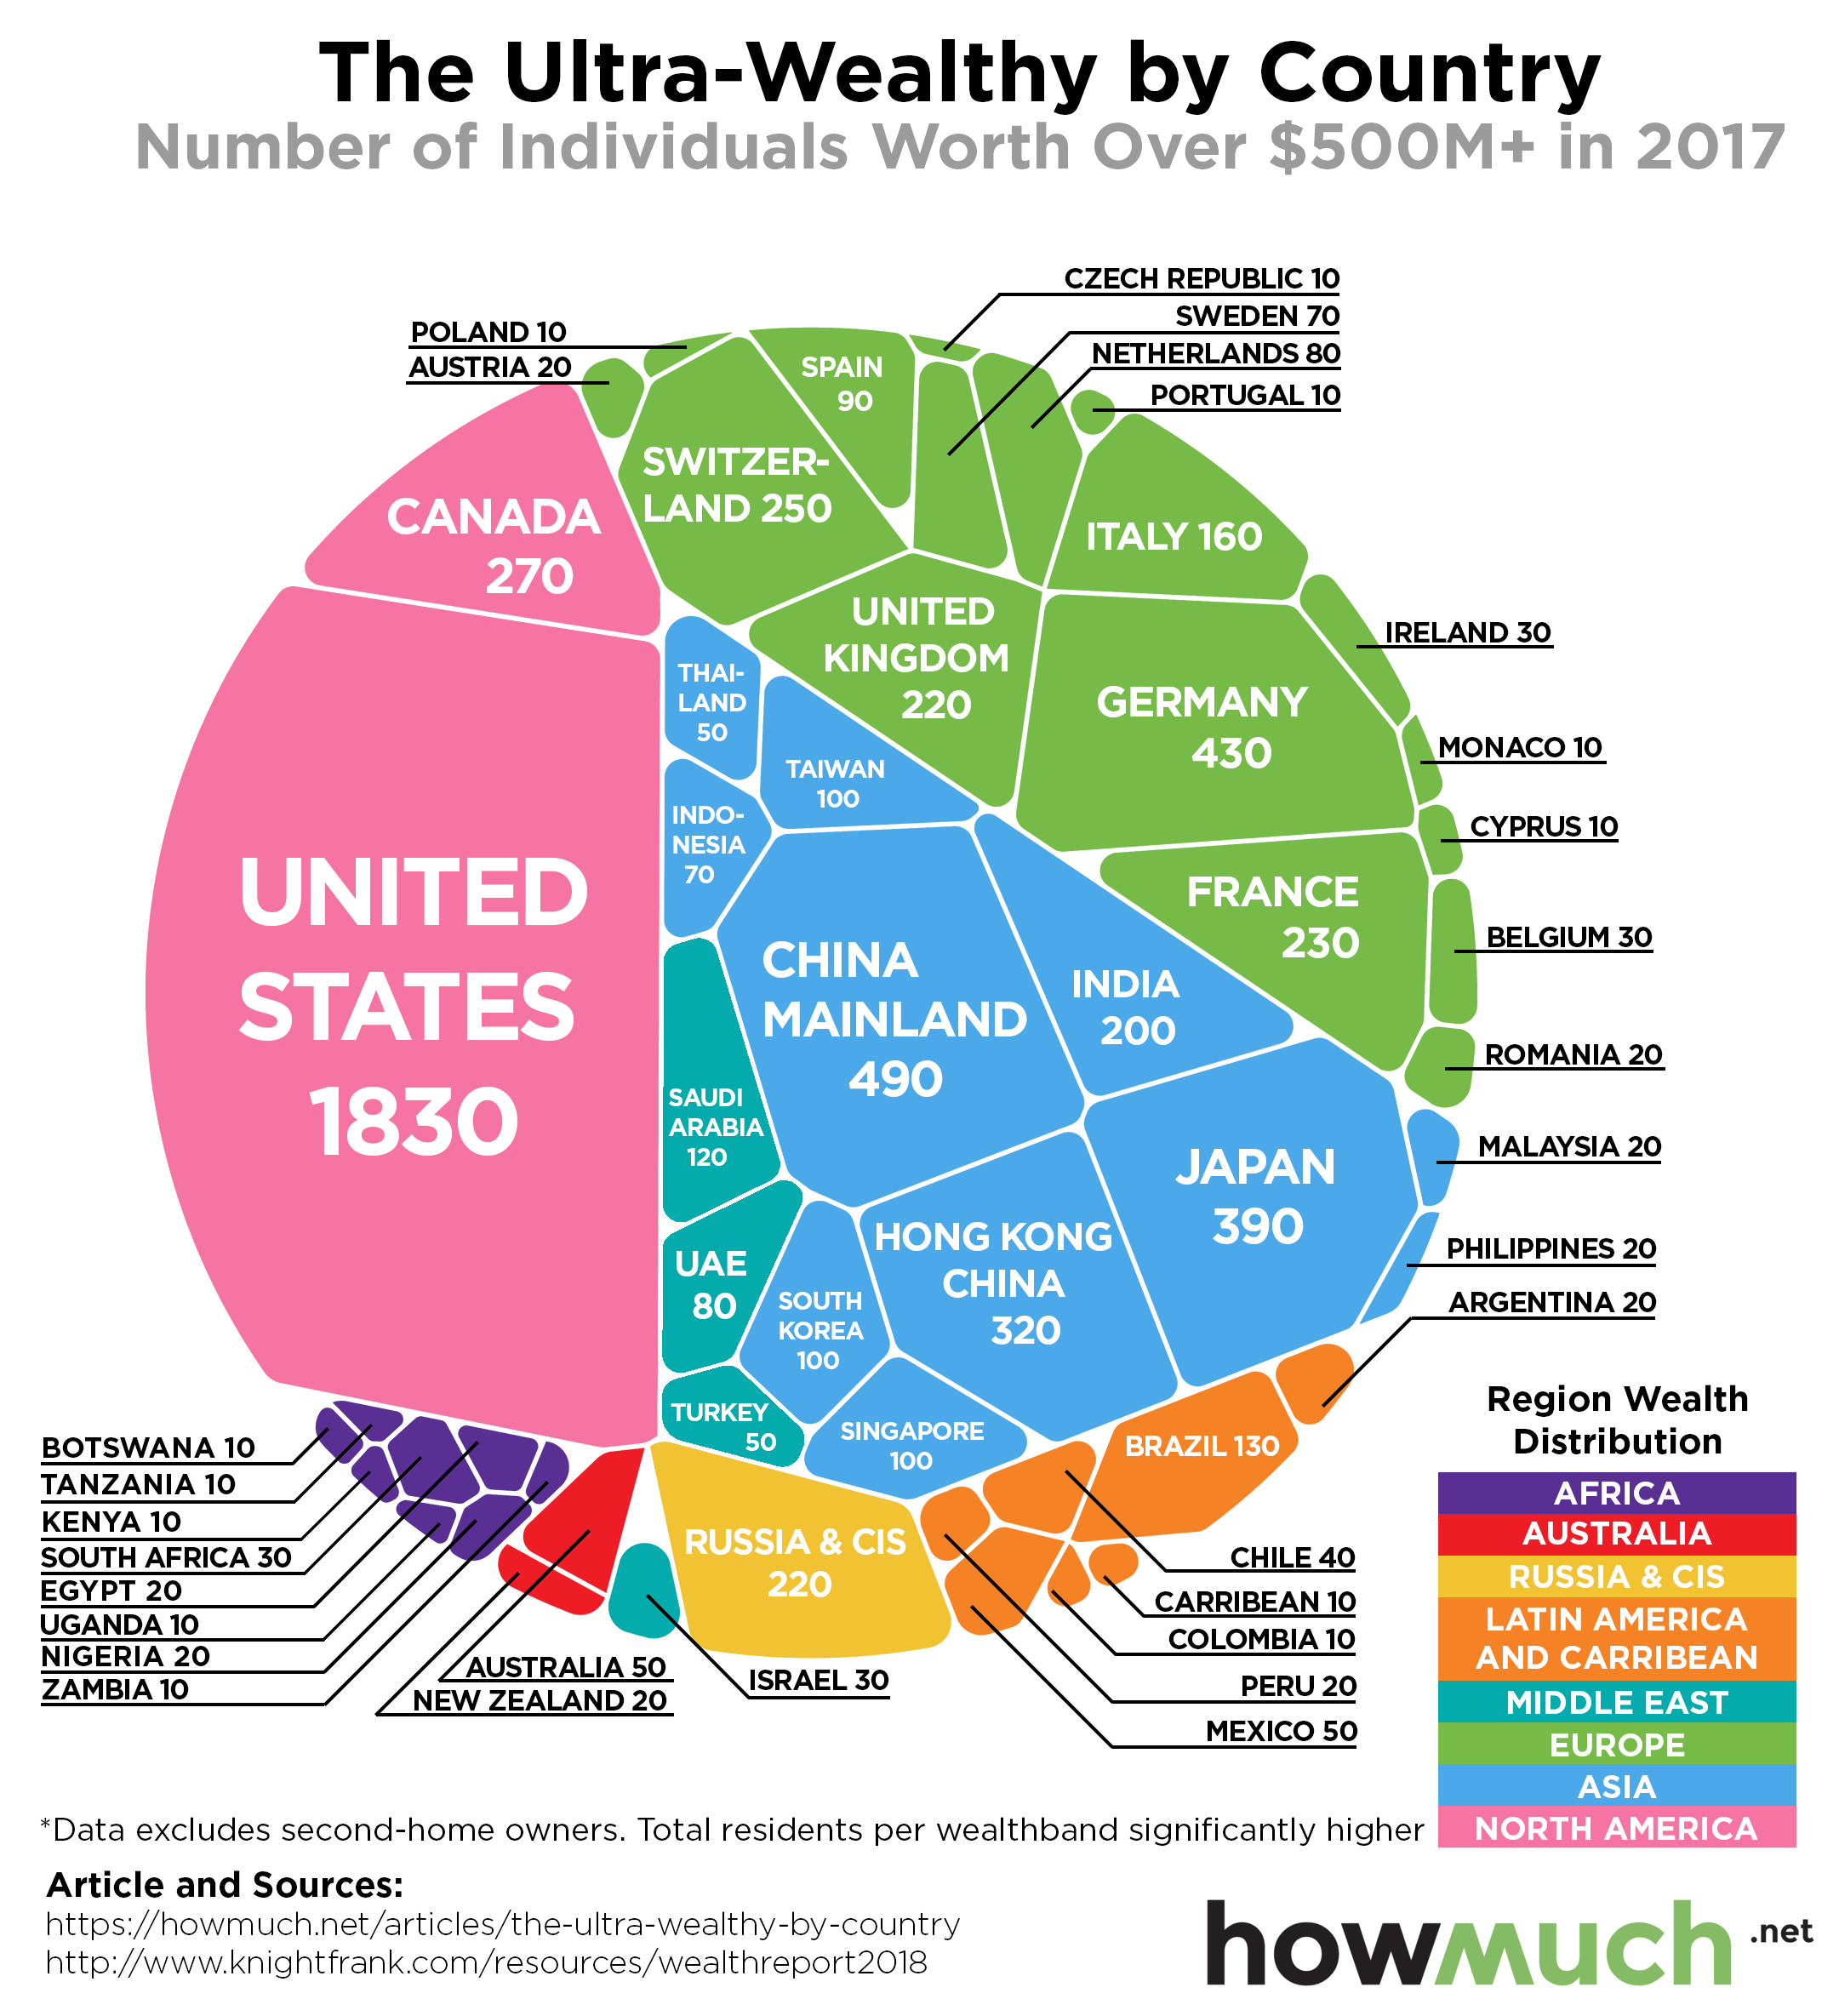 Ultra-Wealthy Map of the World - Infographic